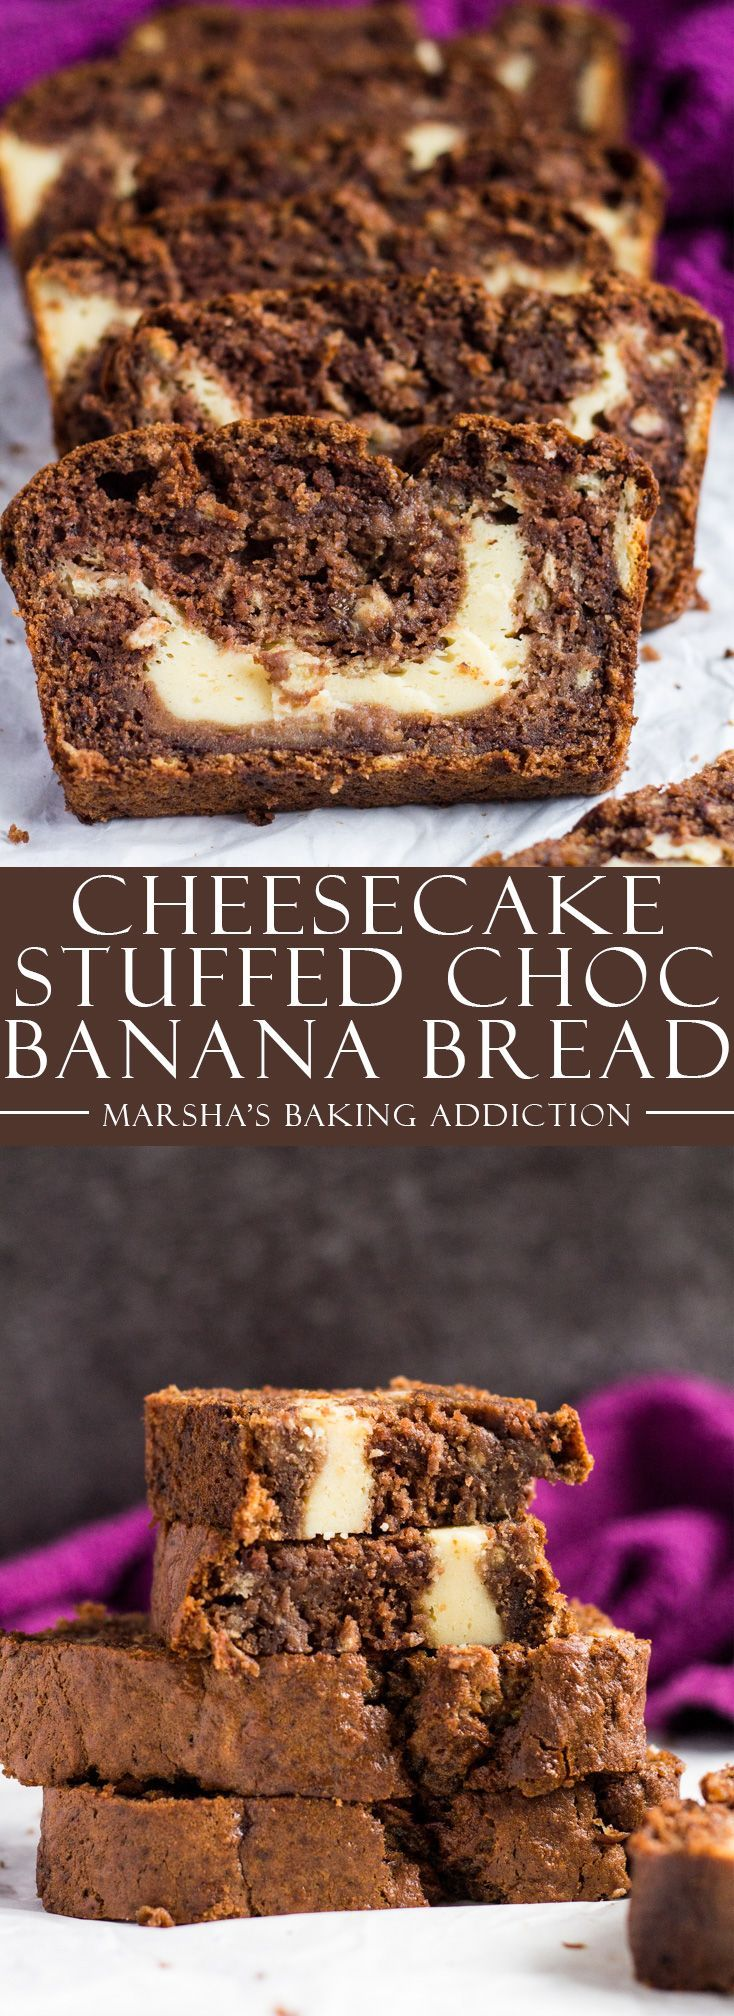 Cheesecake Stuffed Chocolate Banana Bread | marshasbakingaddiction.com @marshasbakeblog